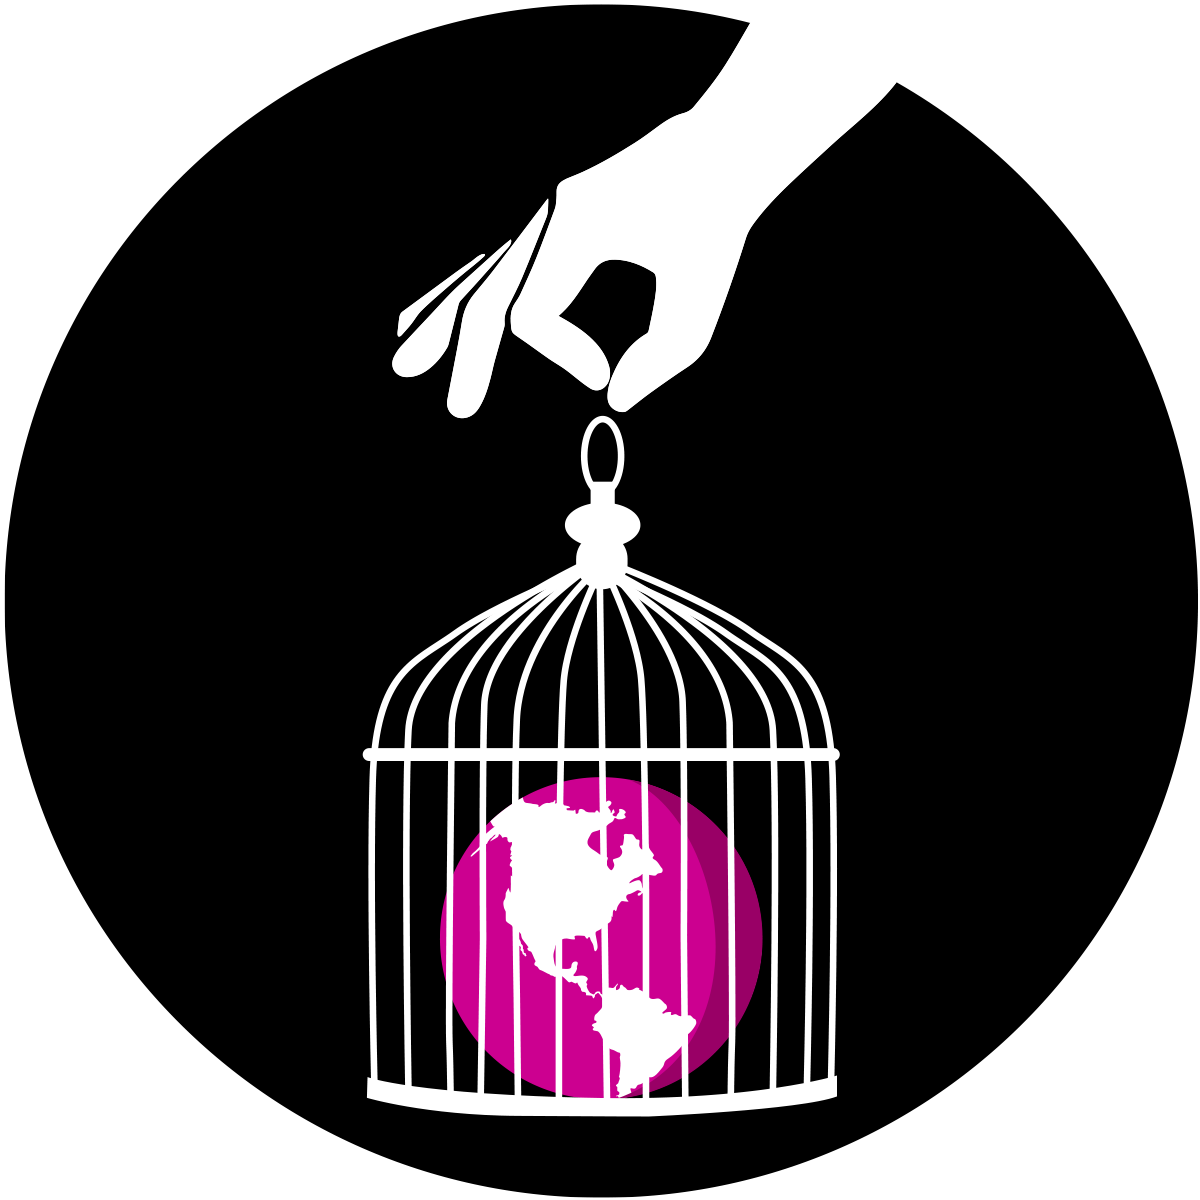 The Feminist Foreign Policy Project is an educational movement. |We know that a true feminist foreign policy is rooted in the end of all systems of domination, exploitation and violence.